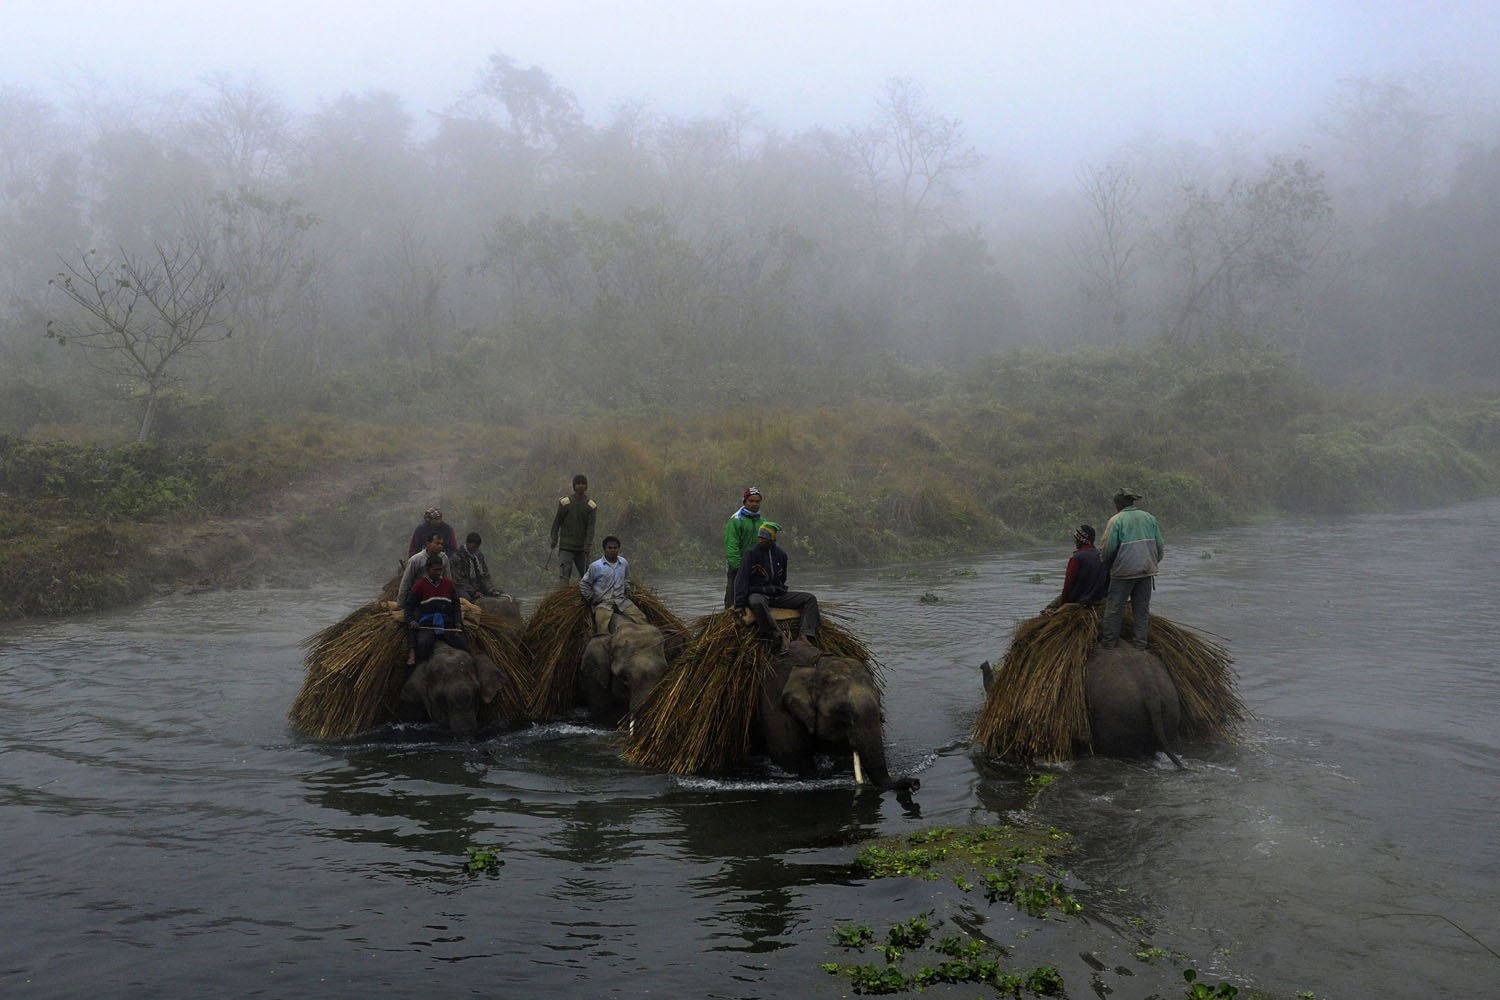 Dec. 28, 2013. Nepalese mahouts guide their elephants across the Rapati river at Sauraha in Chitwan, some 150 km southwest of Kathmandu, during the Chitwan Elephant Festival.